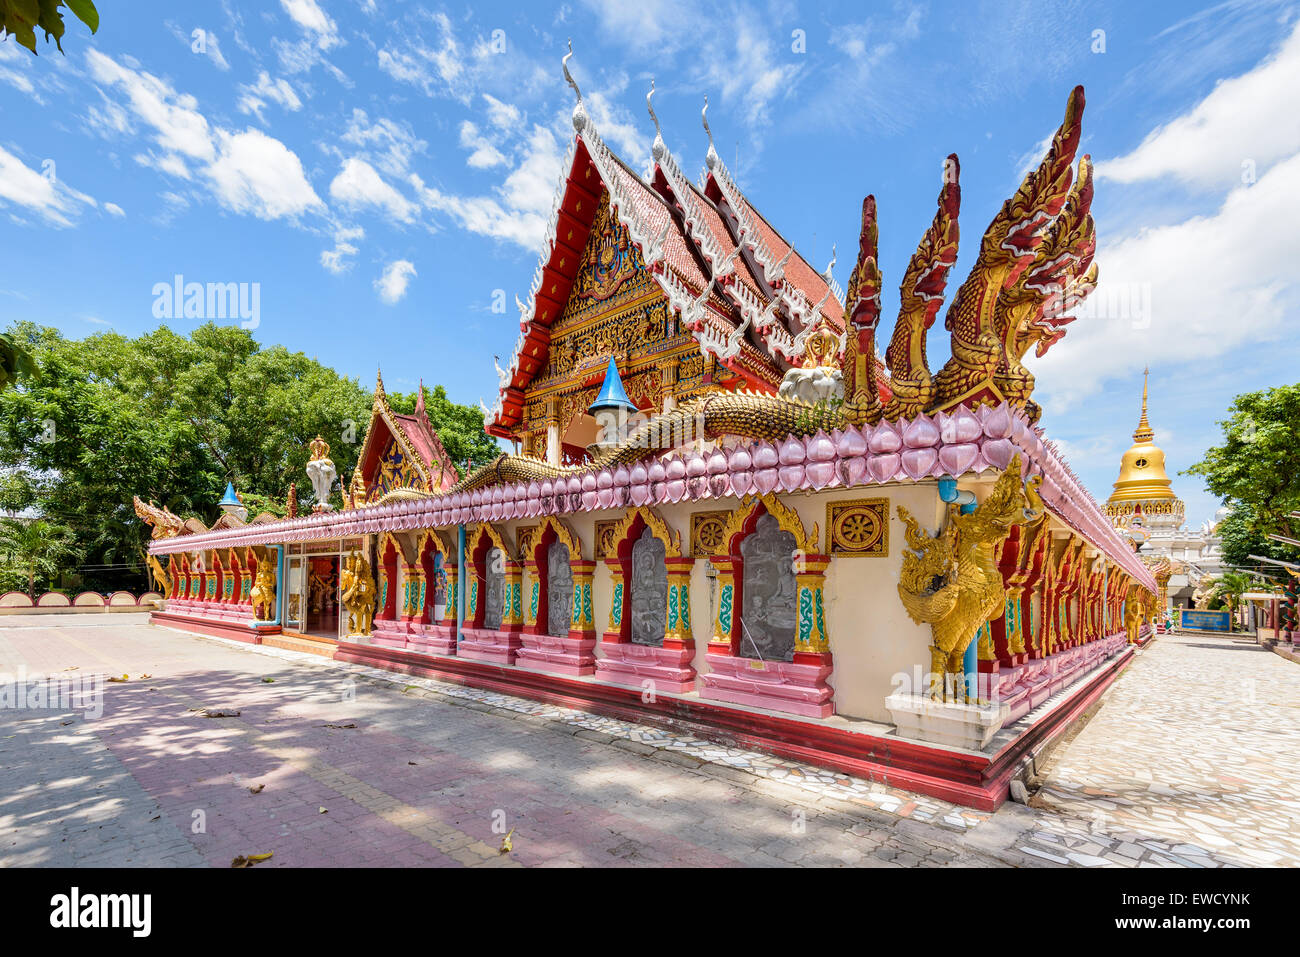 Wat Phra Nang Sang Temple attractions and place of worship in Phuket Province, Thailand Stock Photo